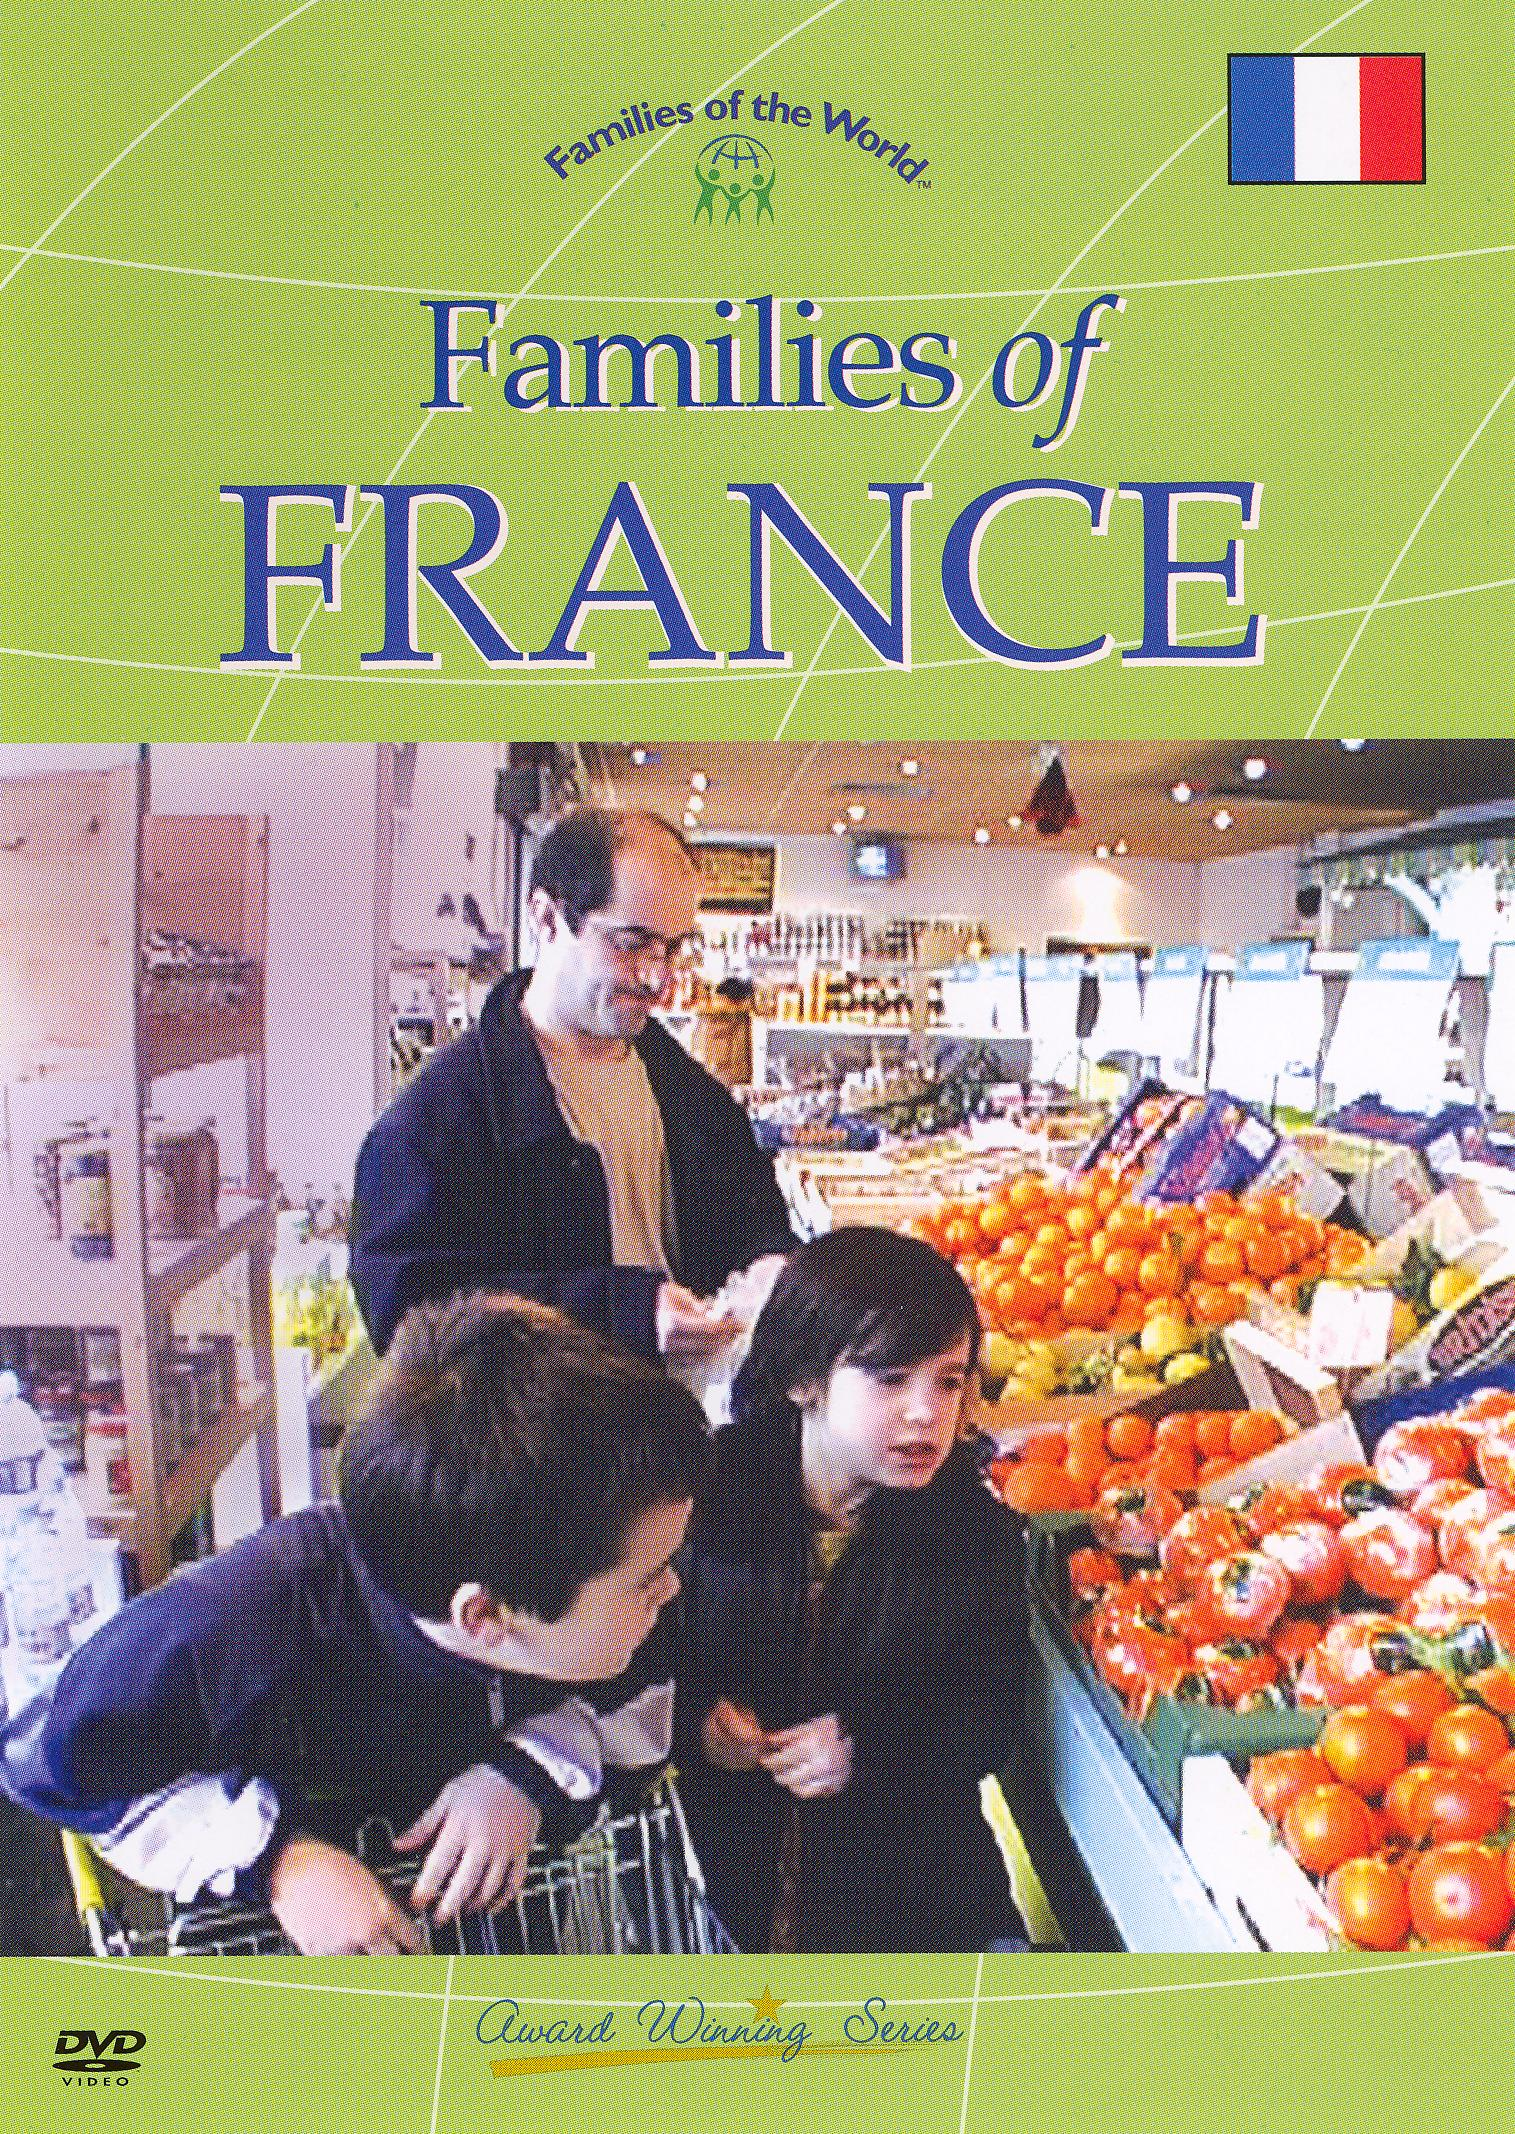 Families of the World: Families of France